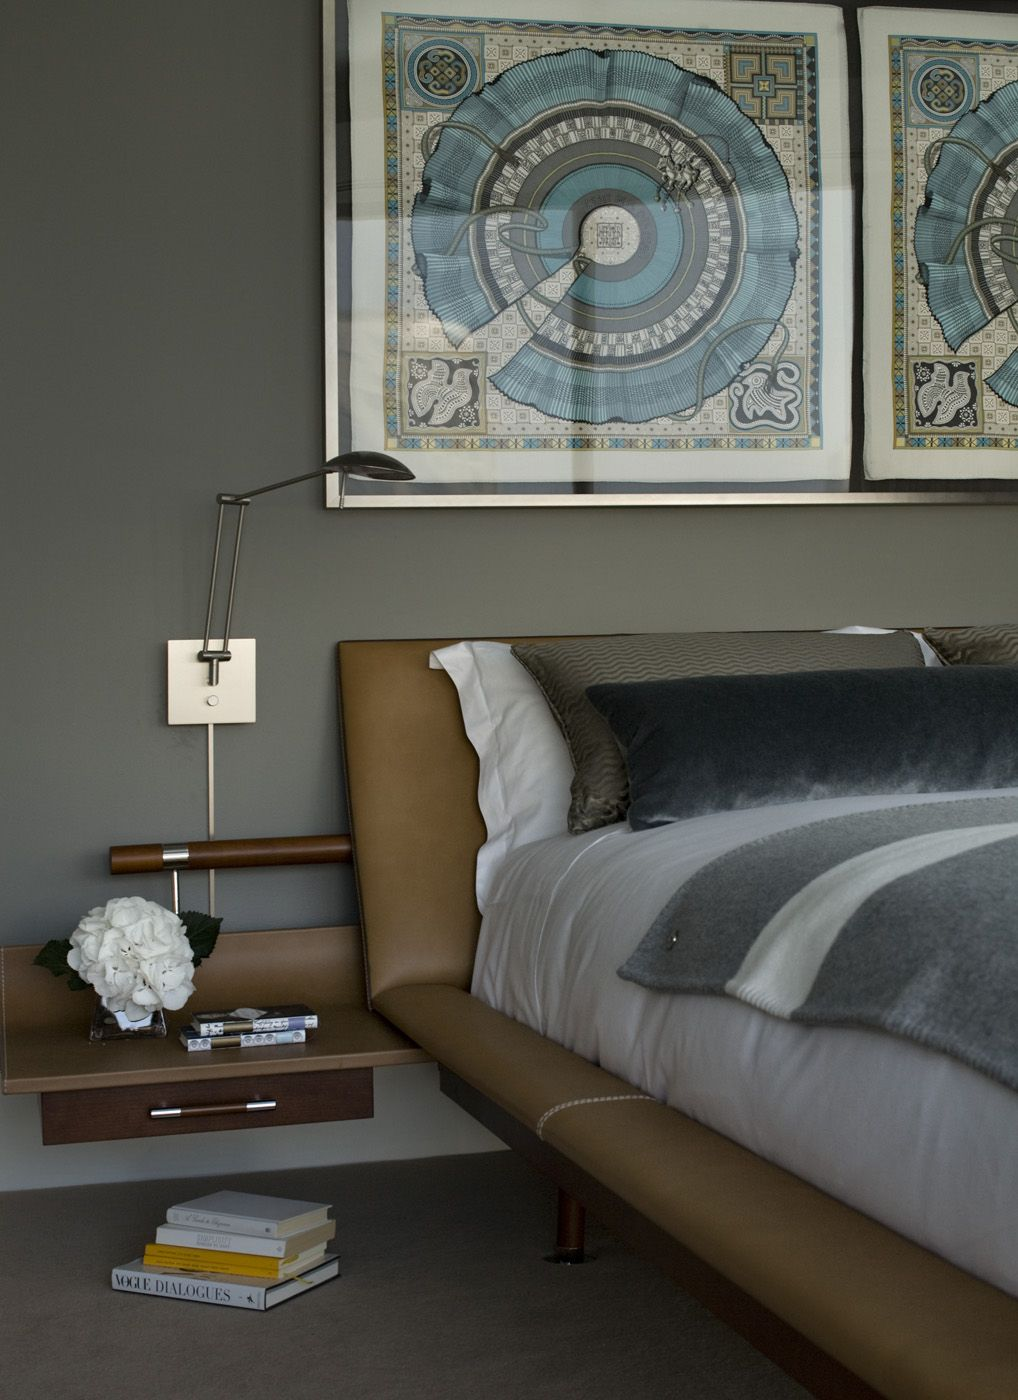 Master Bedroom Don T Love The Artwork Or The Color Of The Bed But I Like The Concept And Style Of Bedroom Frames Interior Design Masters Grey Interior Design